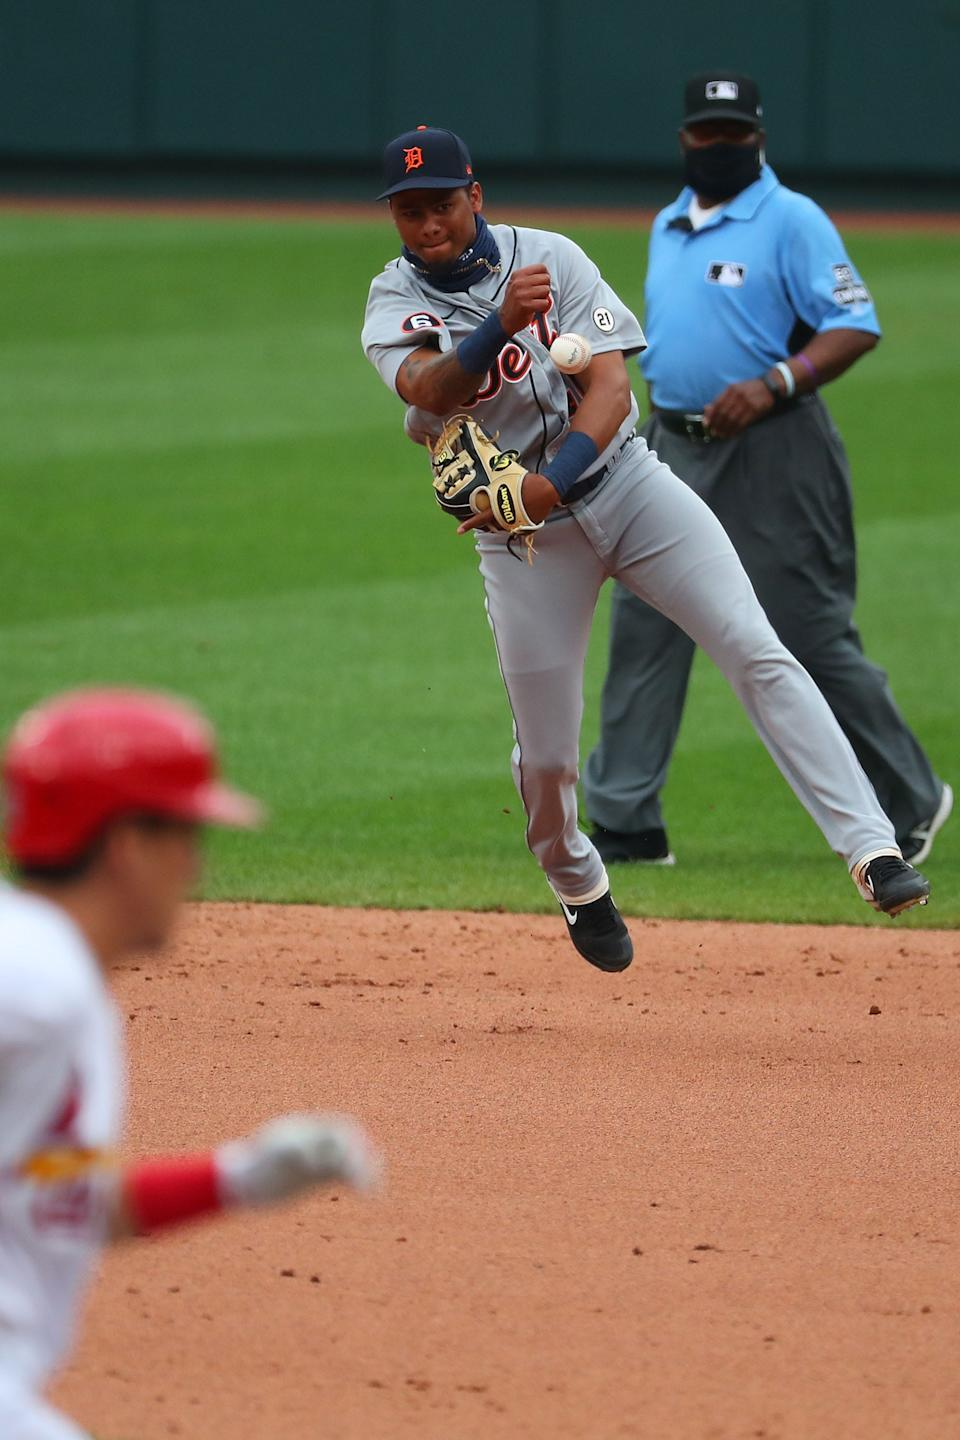 Tigers shortstop Sergio Alcantara throws to first base for an out against the Cardinals in the fifth inning of the 12-2 loss to the Cardinals in Game 1 of the doubleheader on Thursday, Sept. 10, 2020, in St Louis.